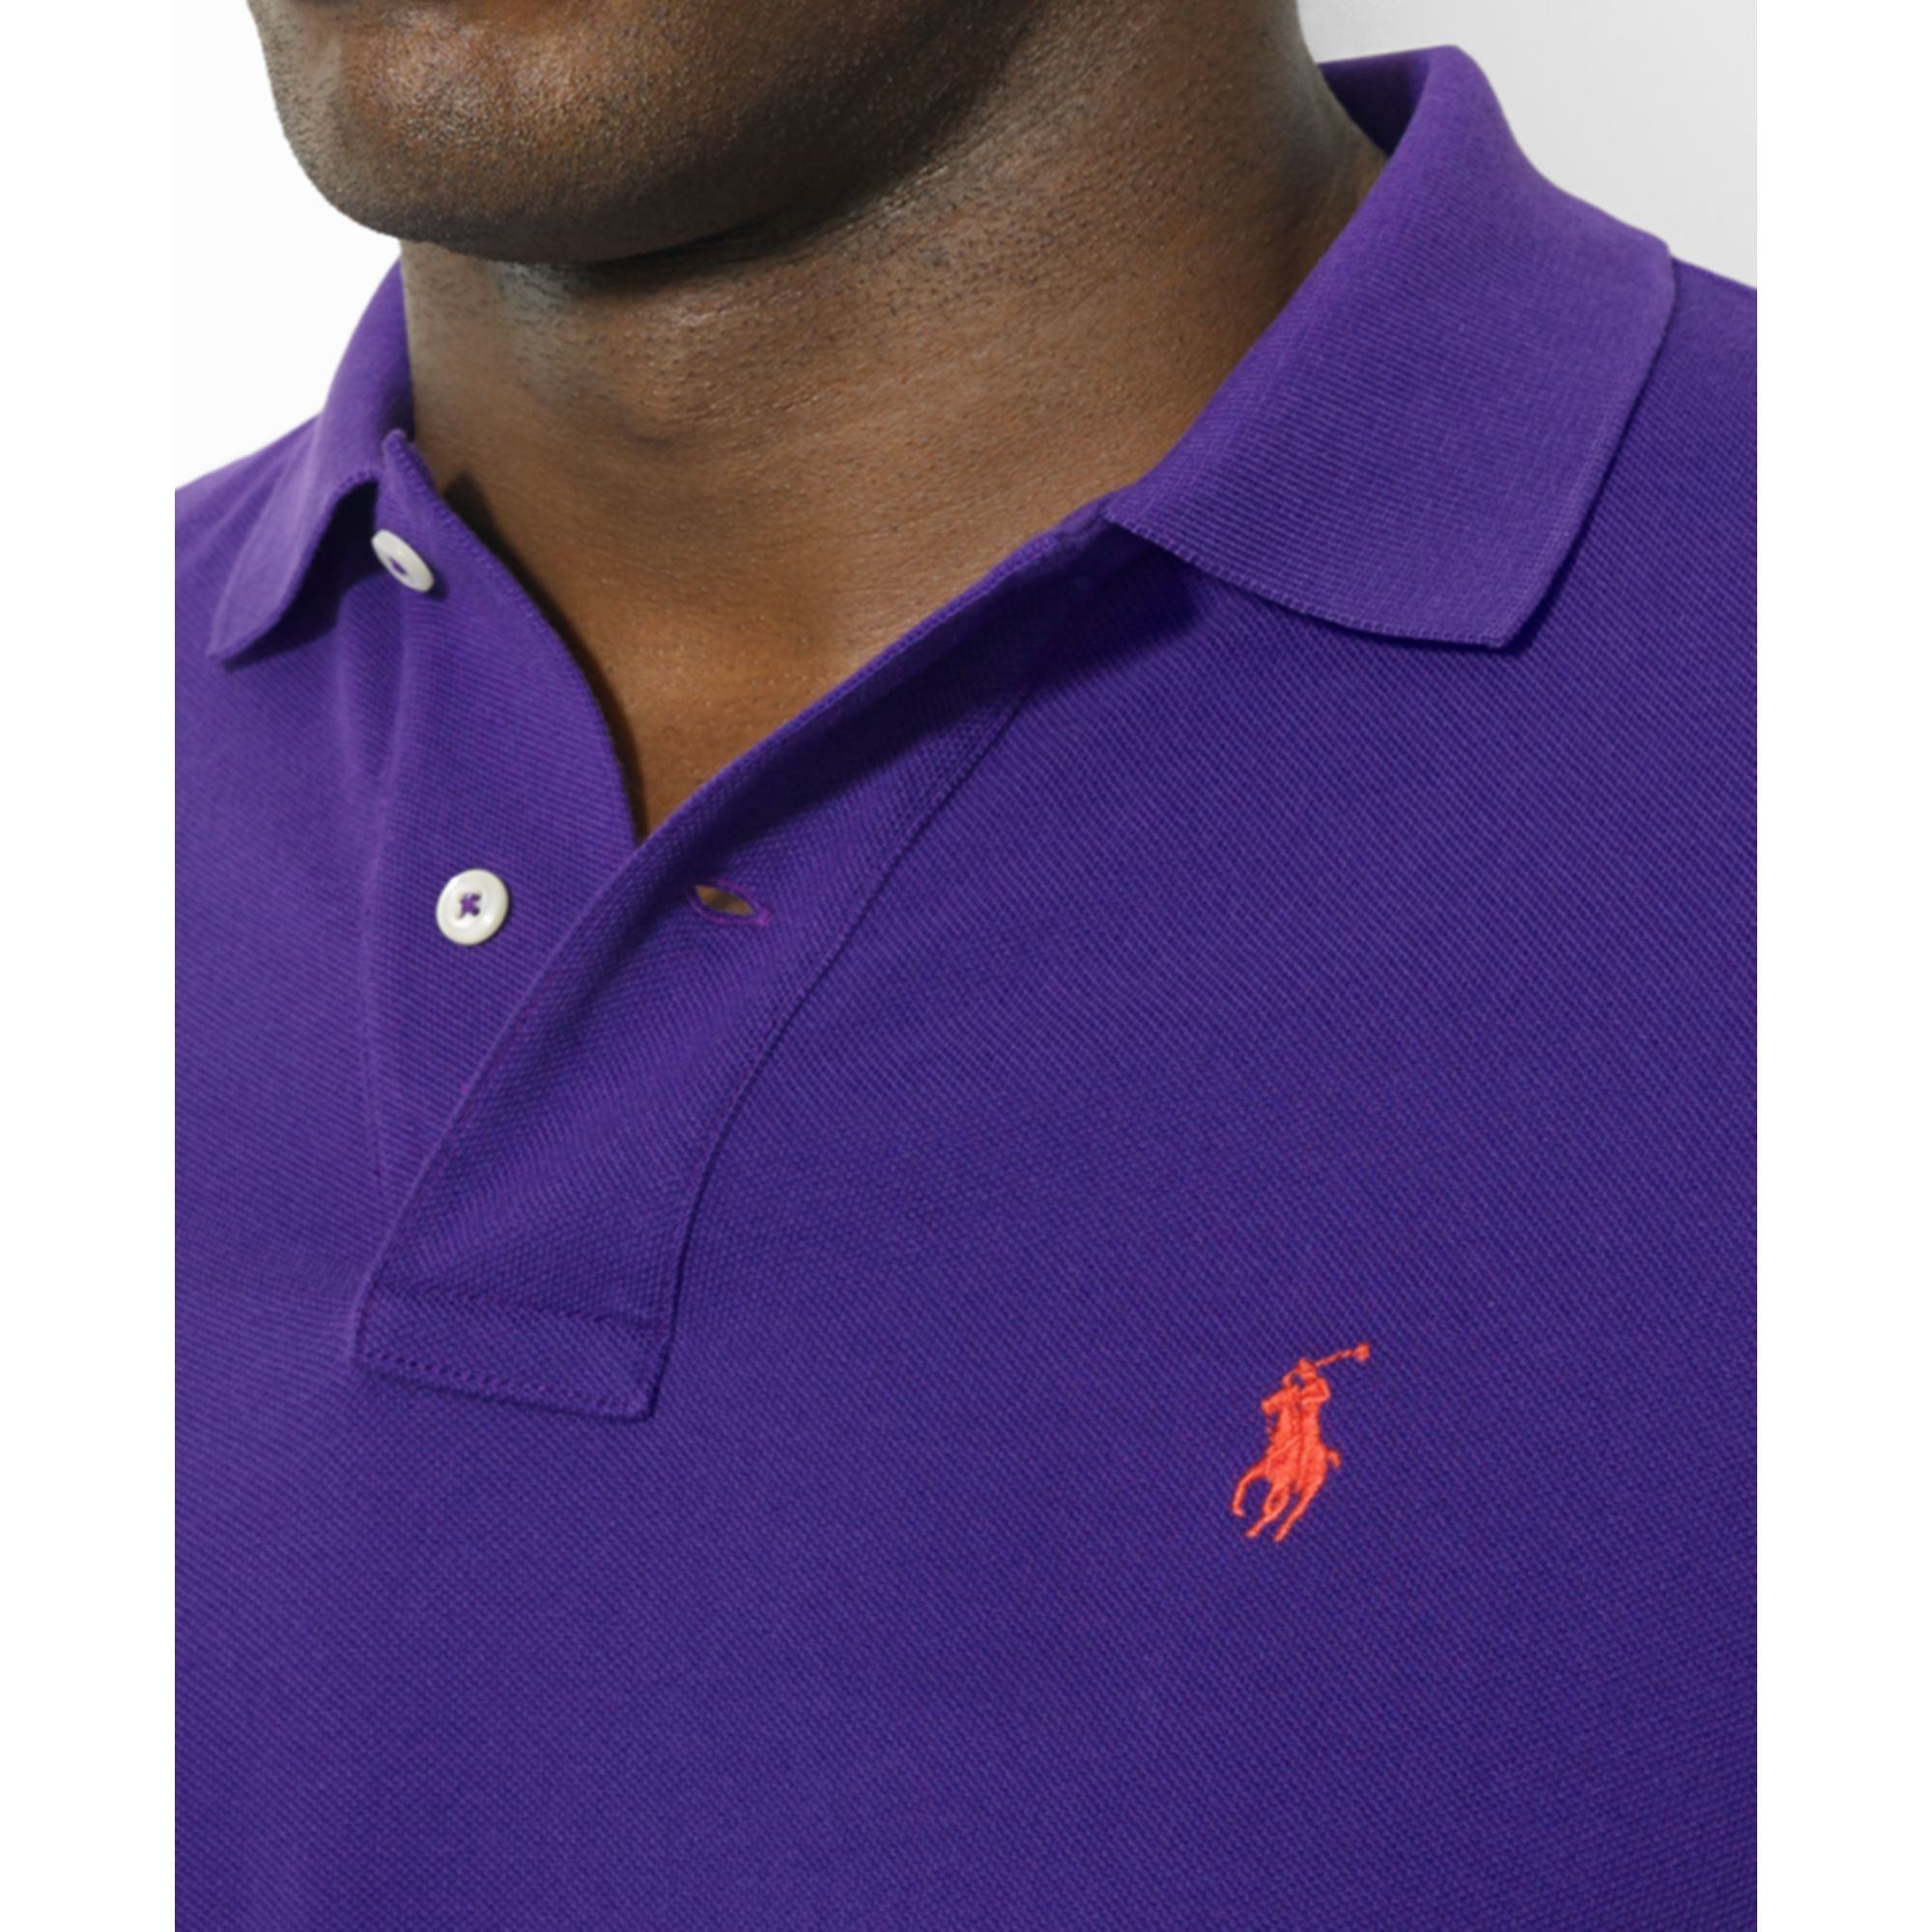 Polo ralph lauren Classic-Fit Short-Sleeve Cotton Mesh Polo in Purple for Men